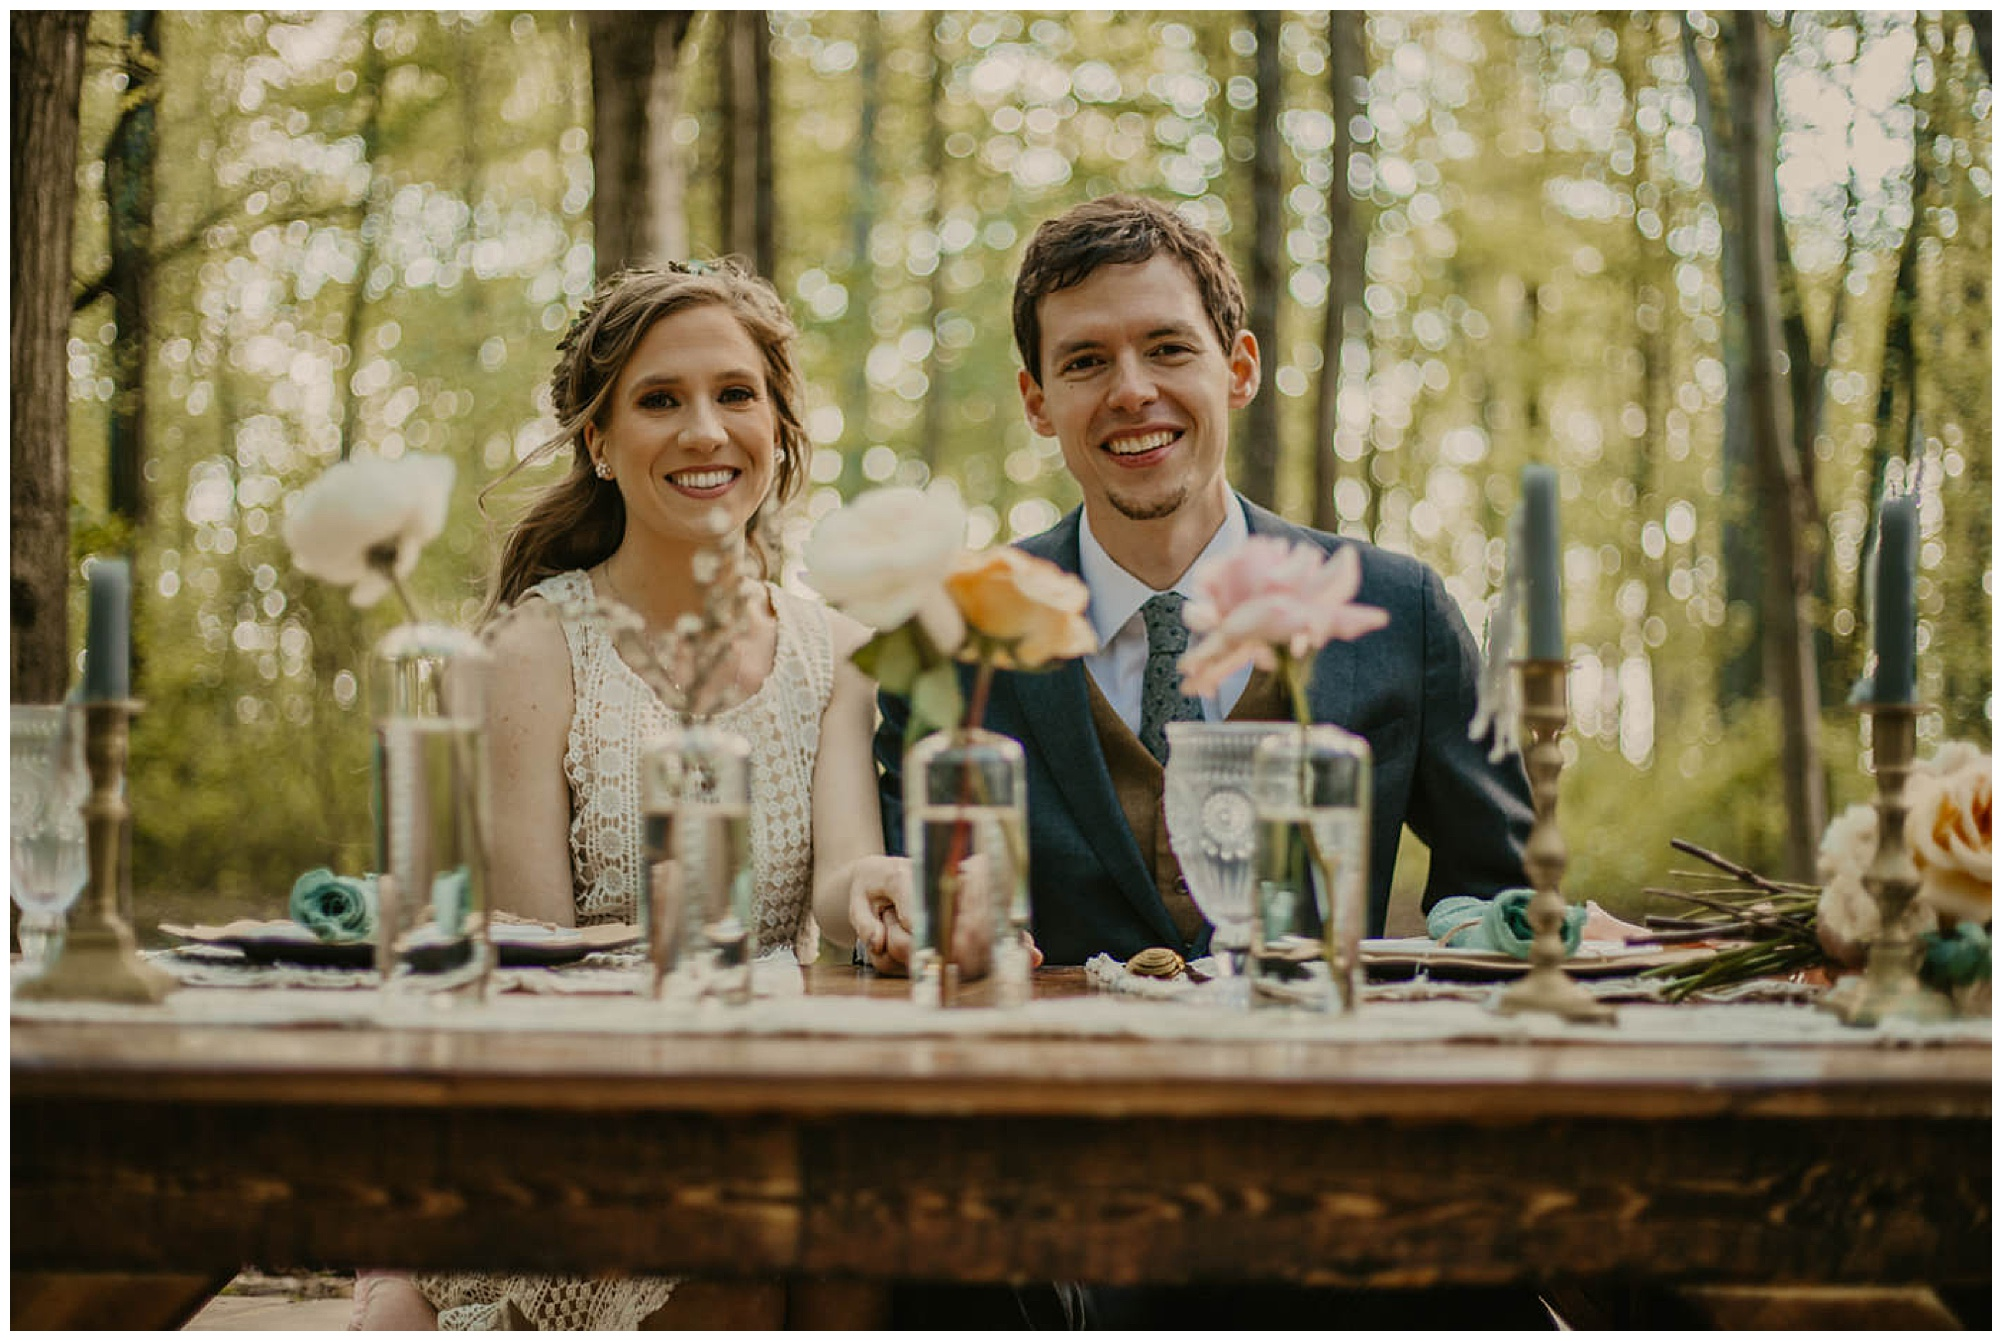 boho style, ecofriendly wedding and carefree elopement theme at prancing deer farm. outdoor natural sustainable venue in warwick md